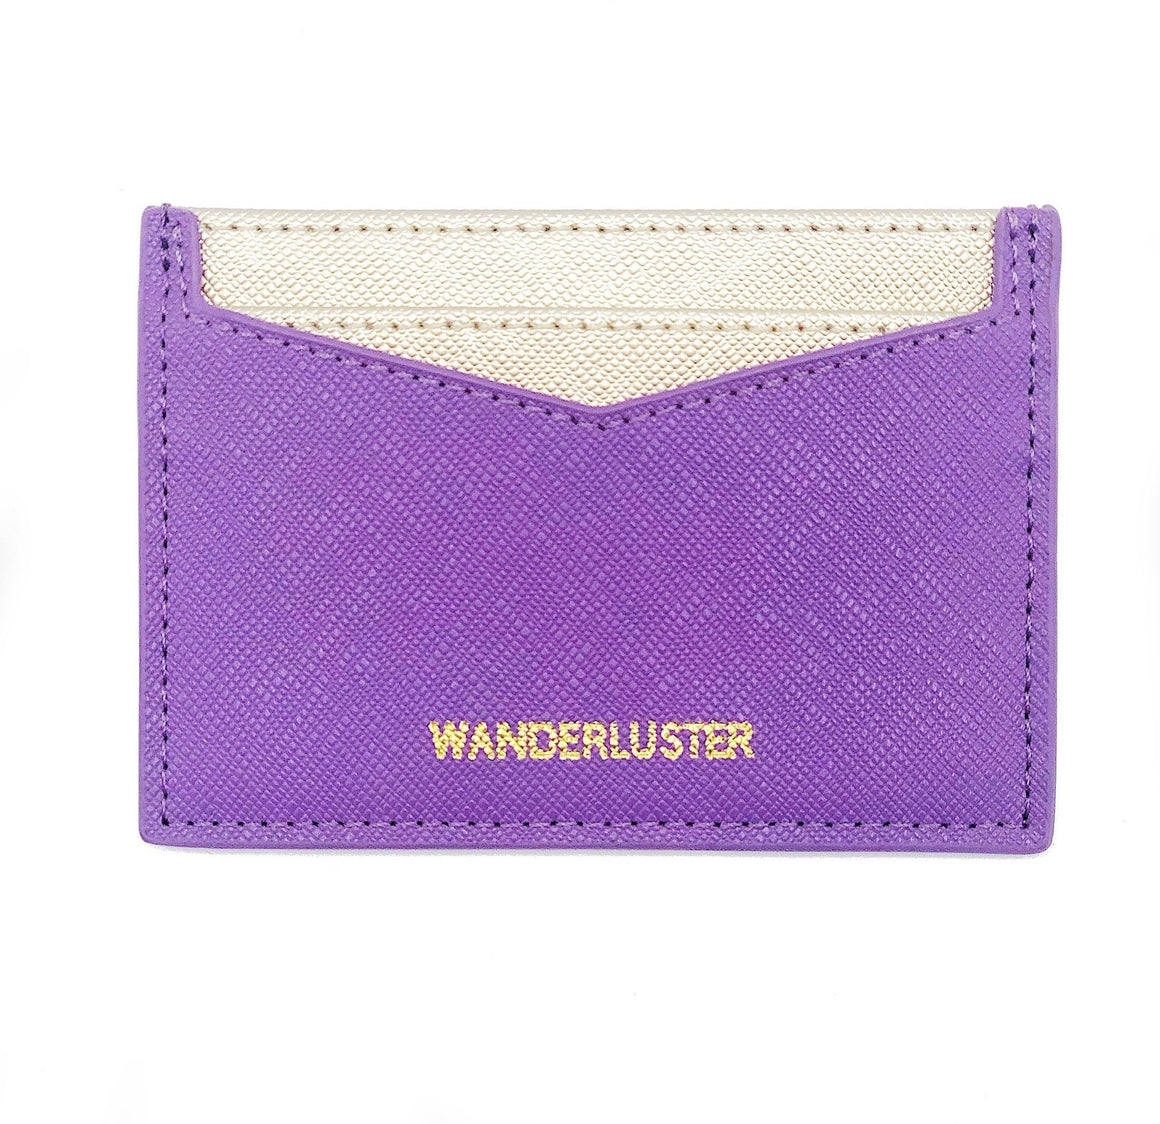 Wanderluster :: Credit Card Wallet